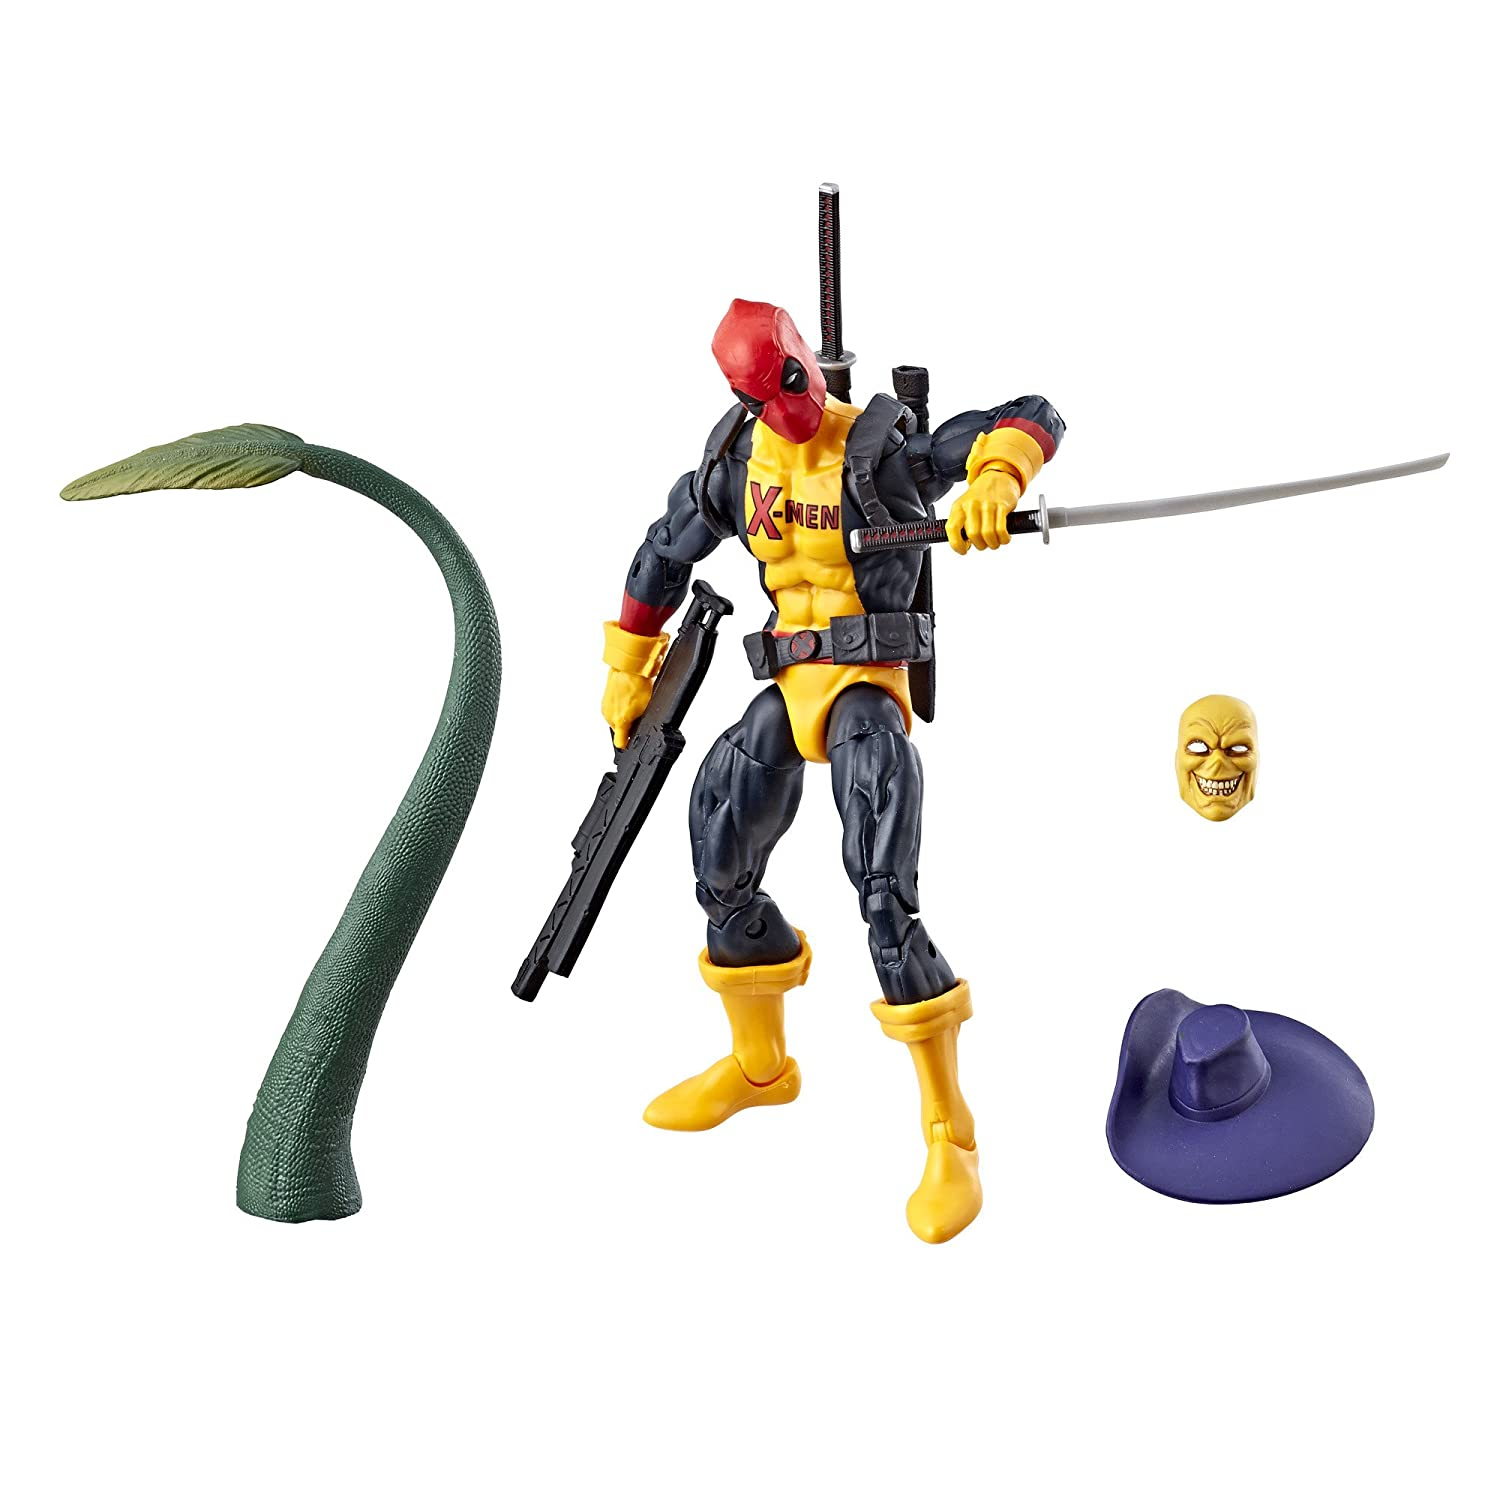 Marvel Legends Series 6-inch Deadpool 2